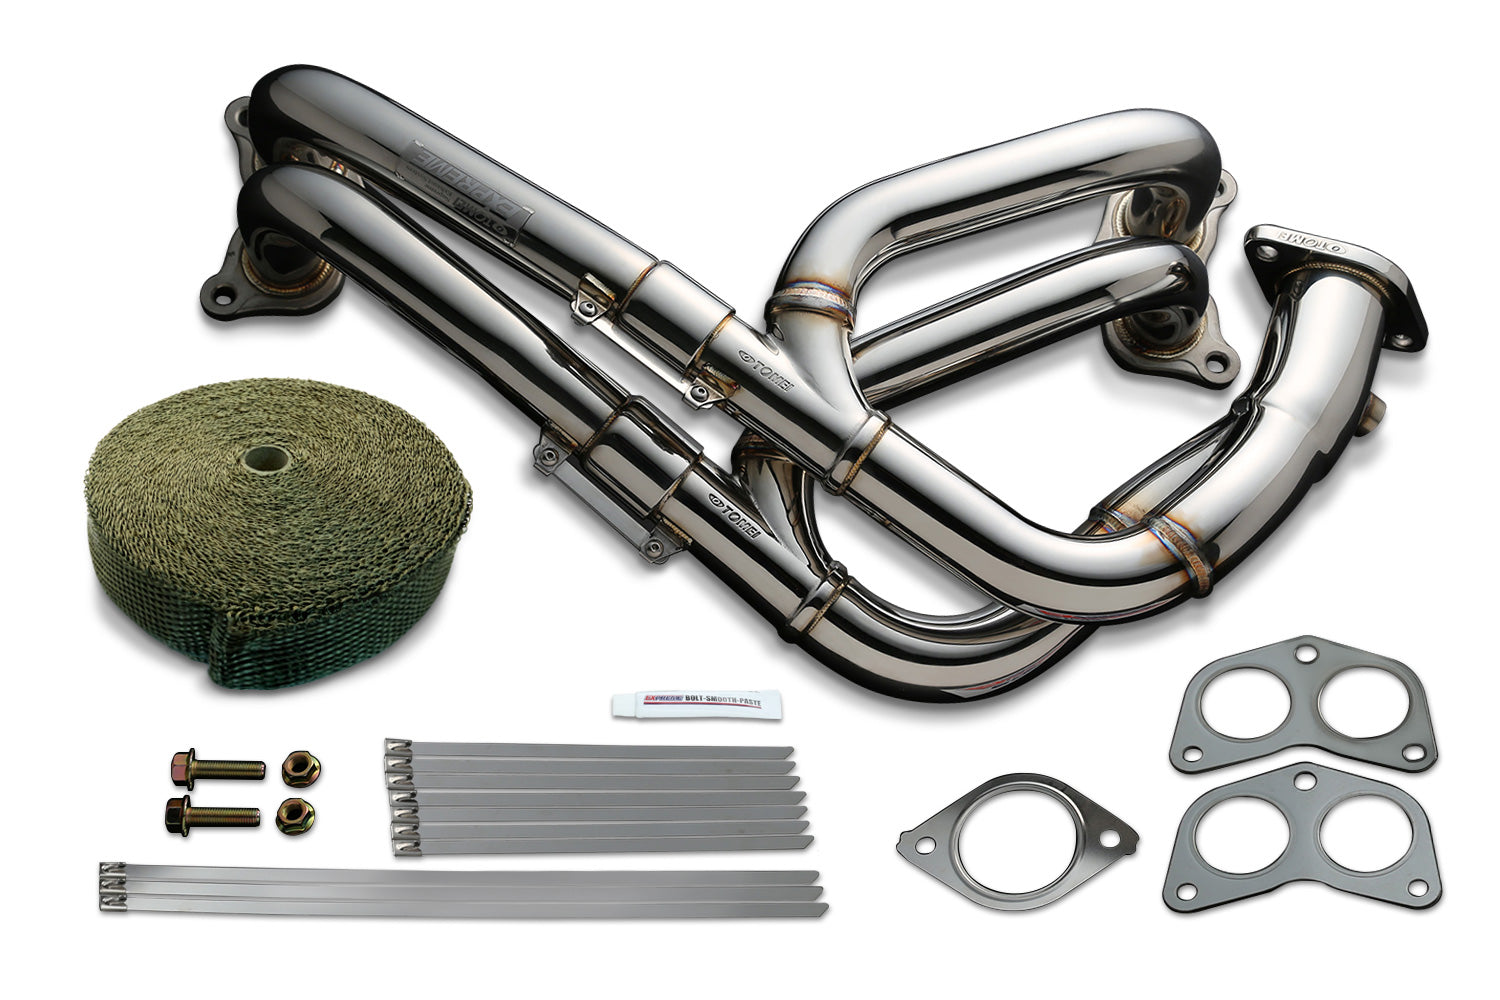 Tomei EXHAUST MANIFOLD KIT EXPREME FA20 ZN6/ZC6 EQUAL LENGTH with TITAN EXHAUST BANDAGE (Previous Part Number 412002)